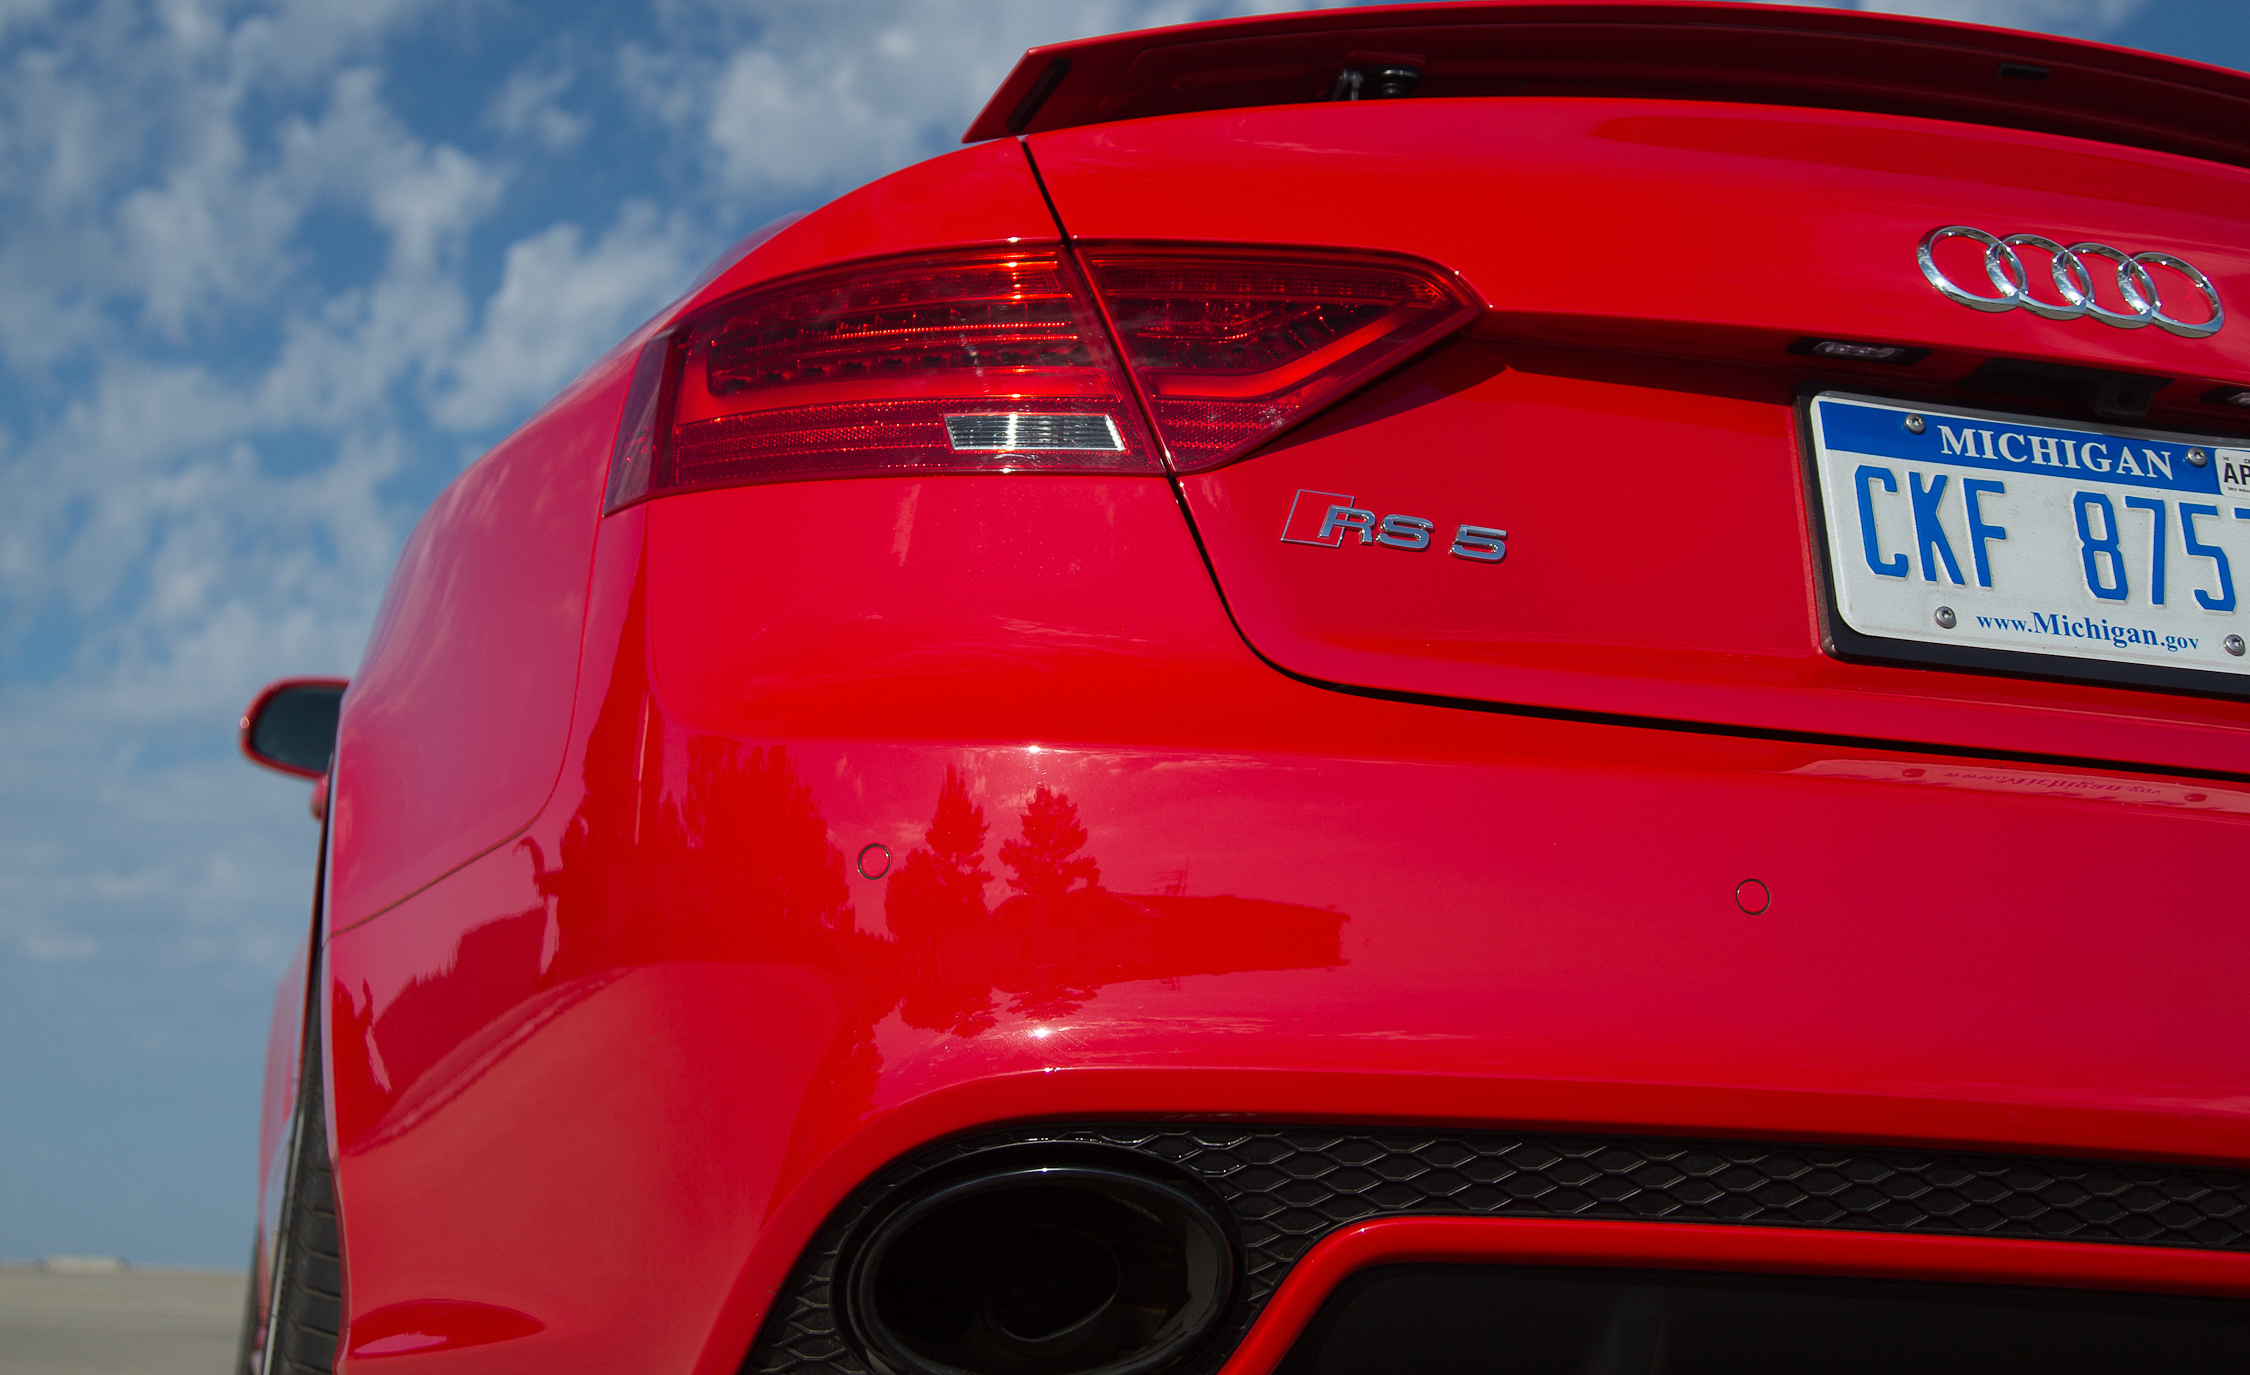 2013 Audi RS 5 Exterior View Rear Bumper (Photo 15 of 41)